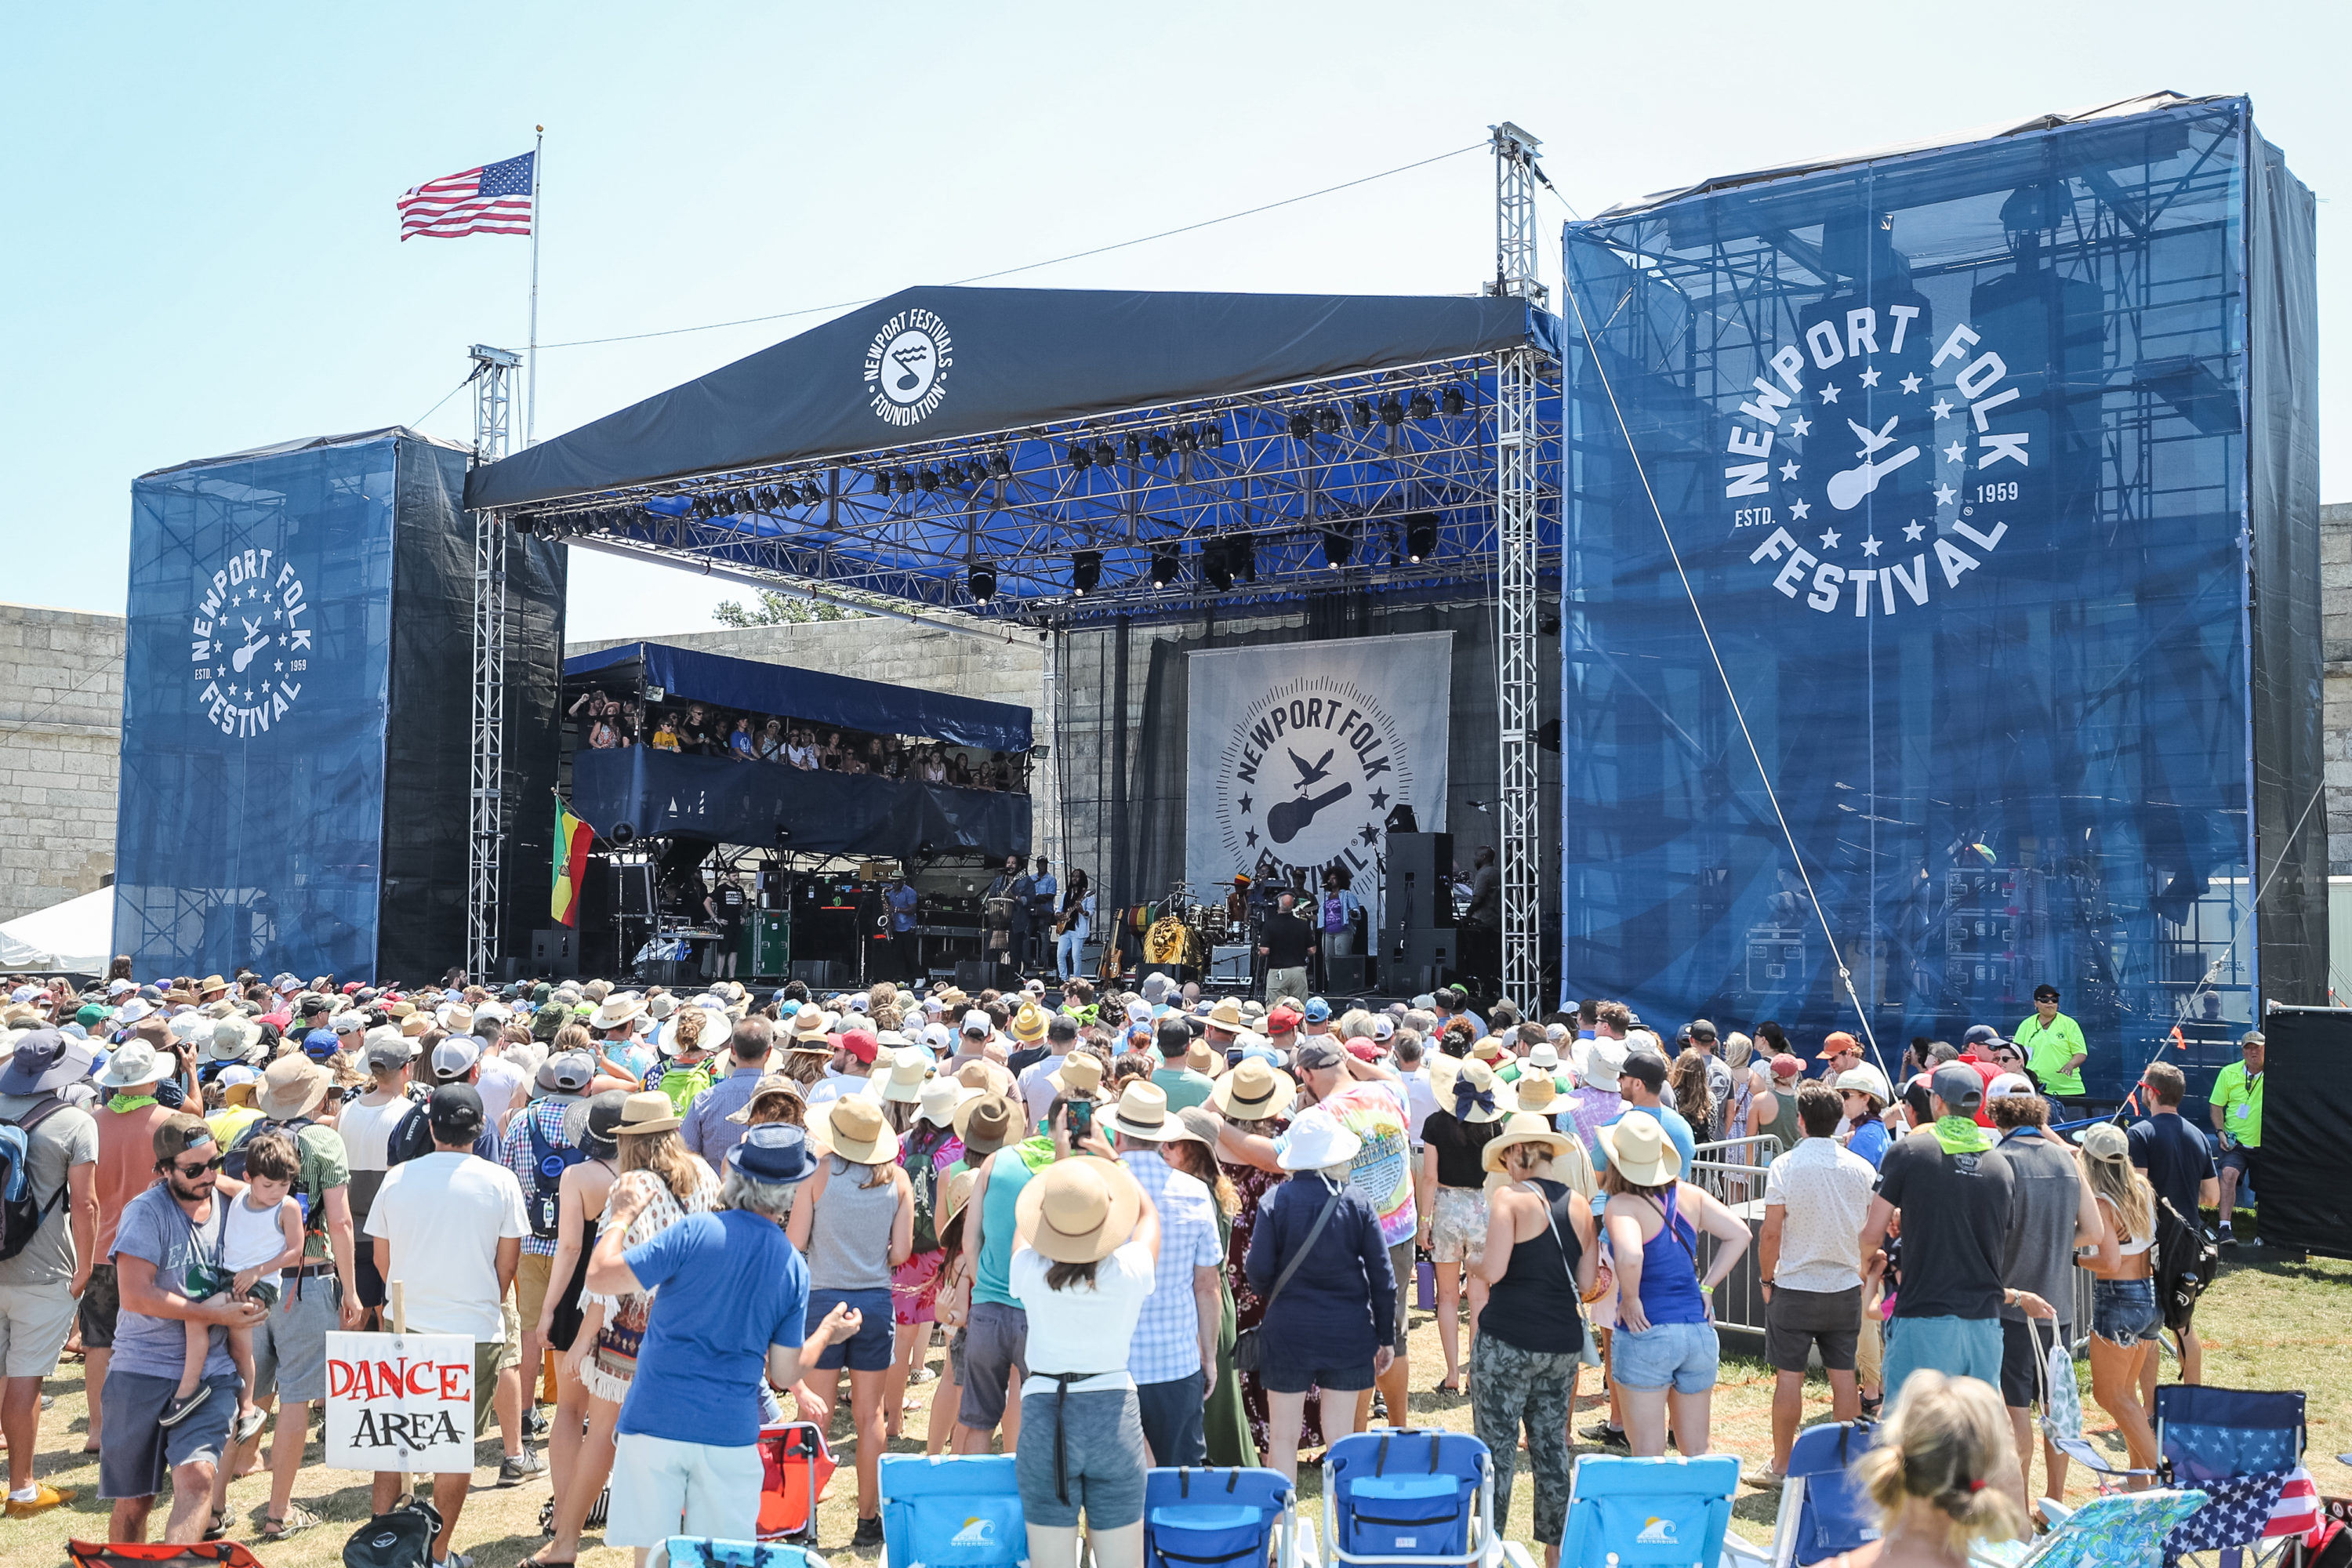 The main stage and crowd at the 60th annual Newport Folk Festival at Fort Adams State Park on July 28, 2019 in Newport, Rhode Island. (Photo by Douglas Mason/WireImage)